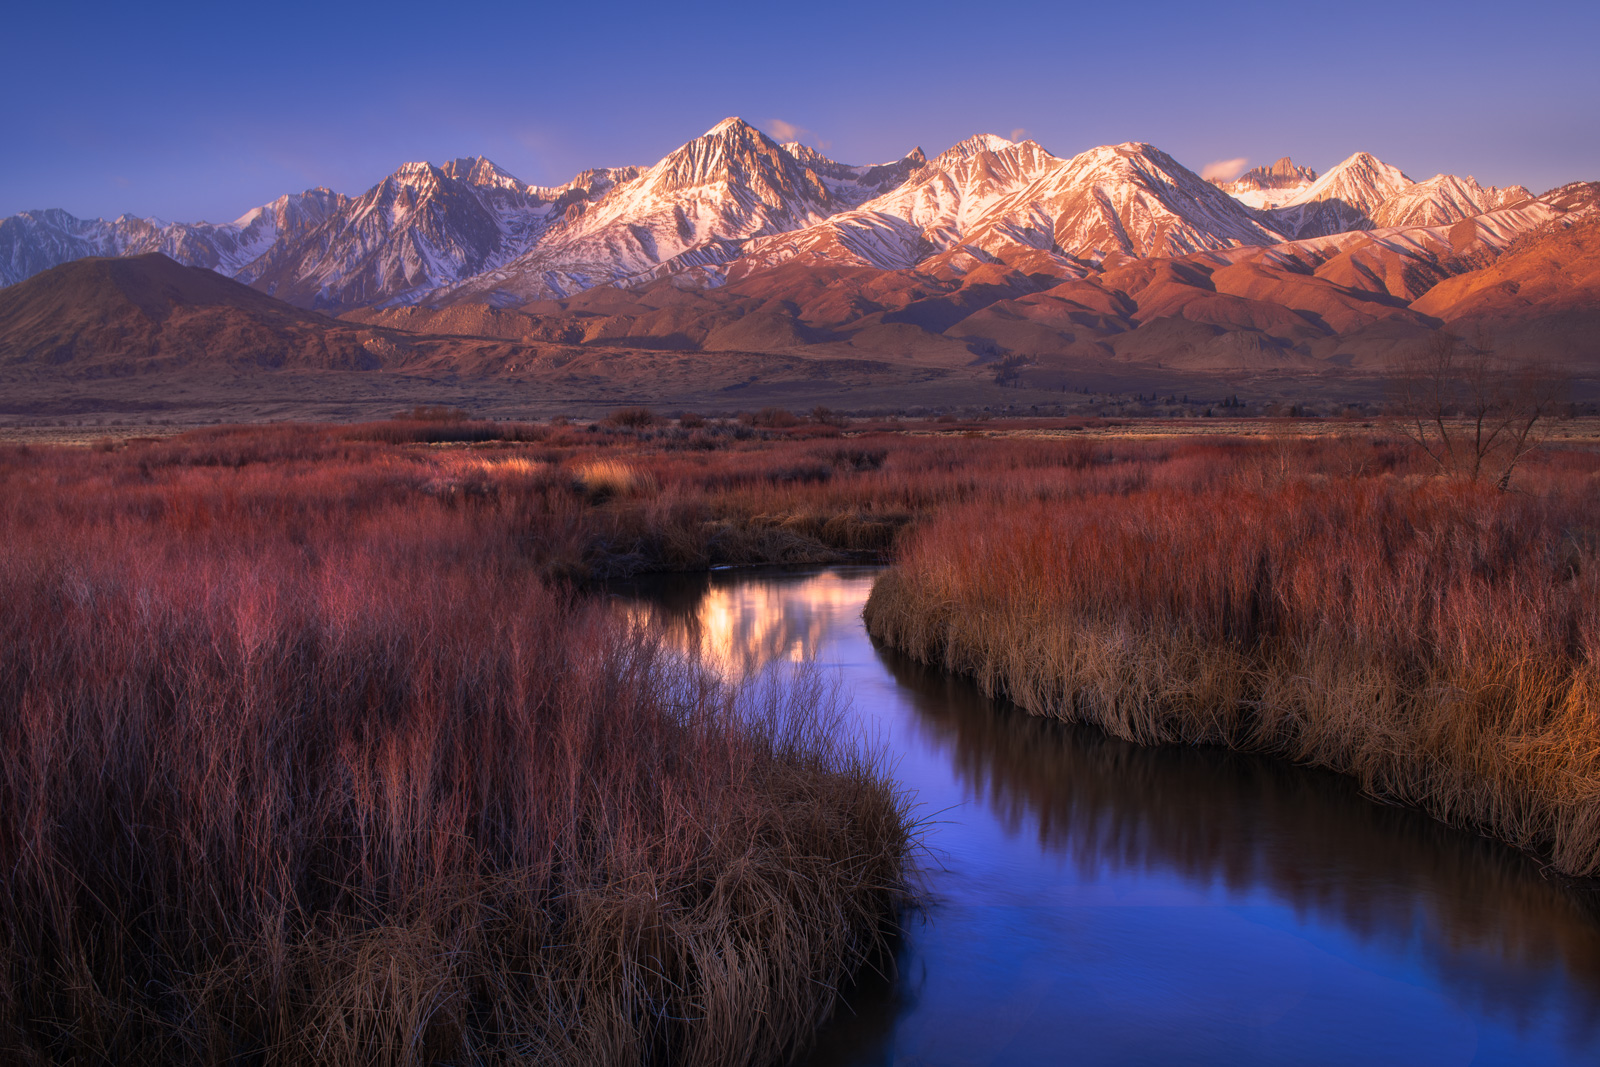 First light on the Sierra Nevada Mountains reflects in the Owens River, California.